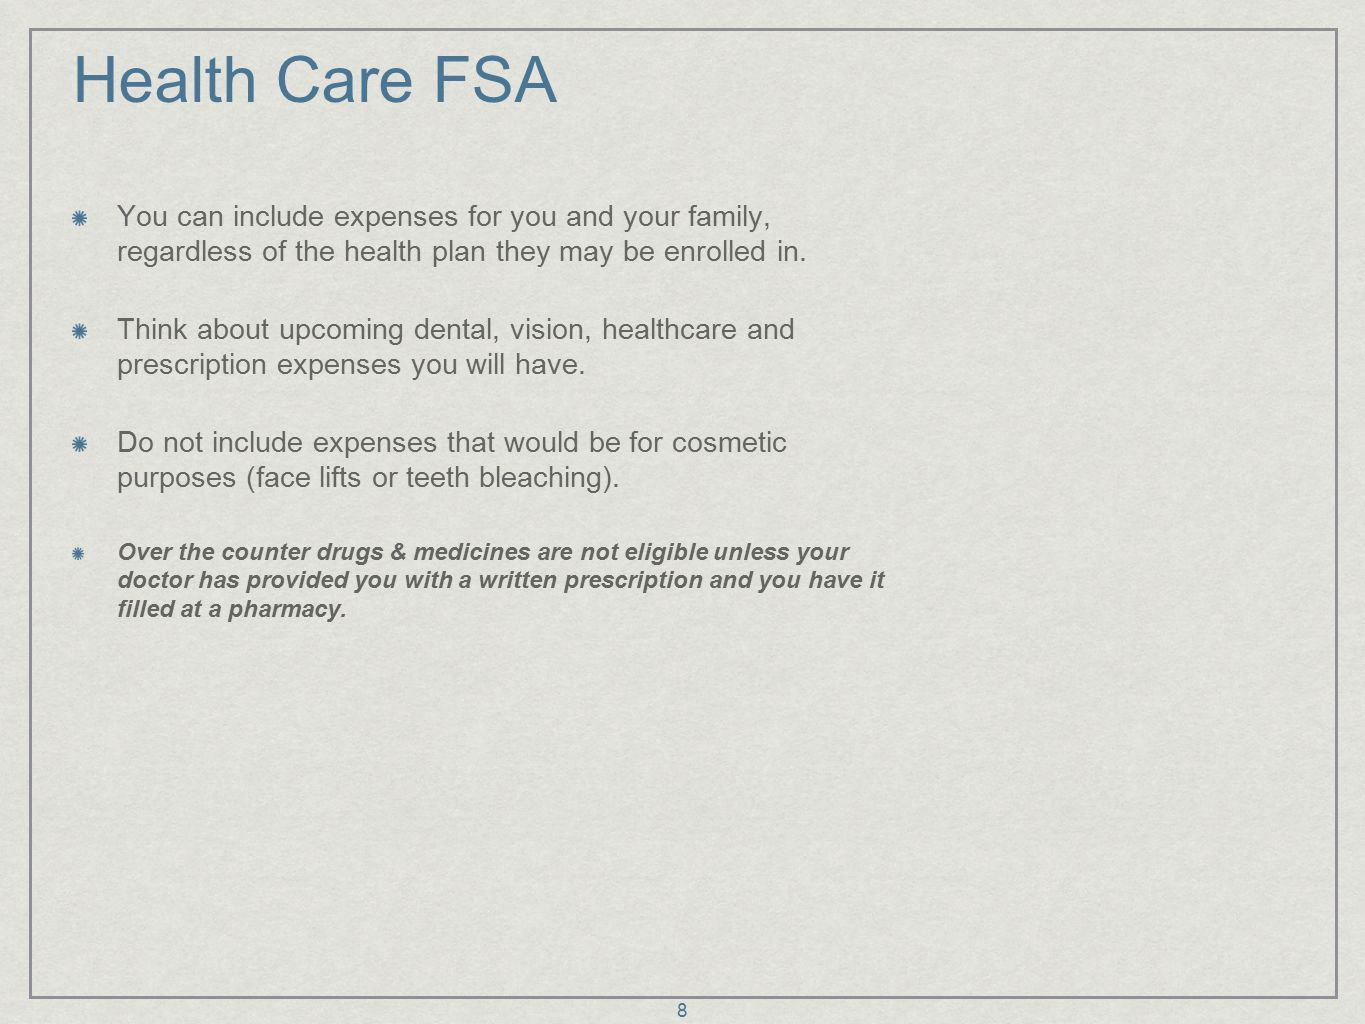 8 Health Care FSA You can include expenses for you and your family, regardless of the health plan they may be enrolled in.